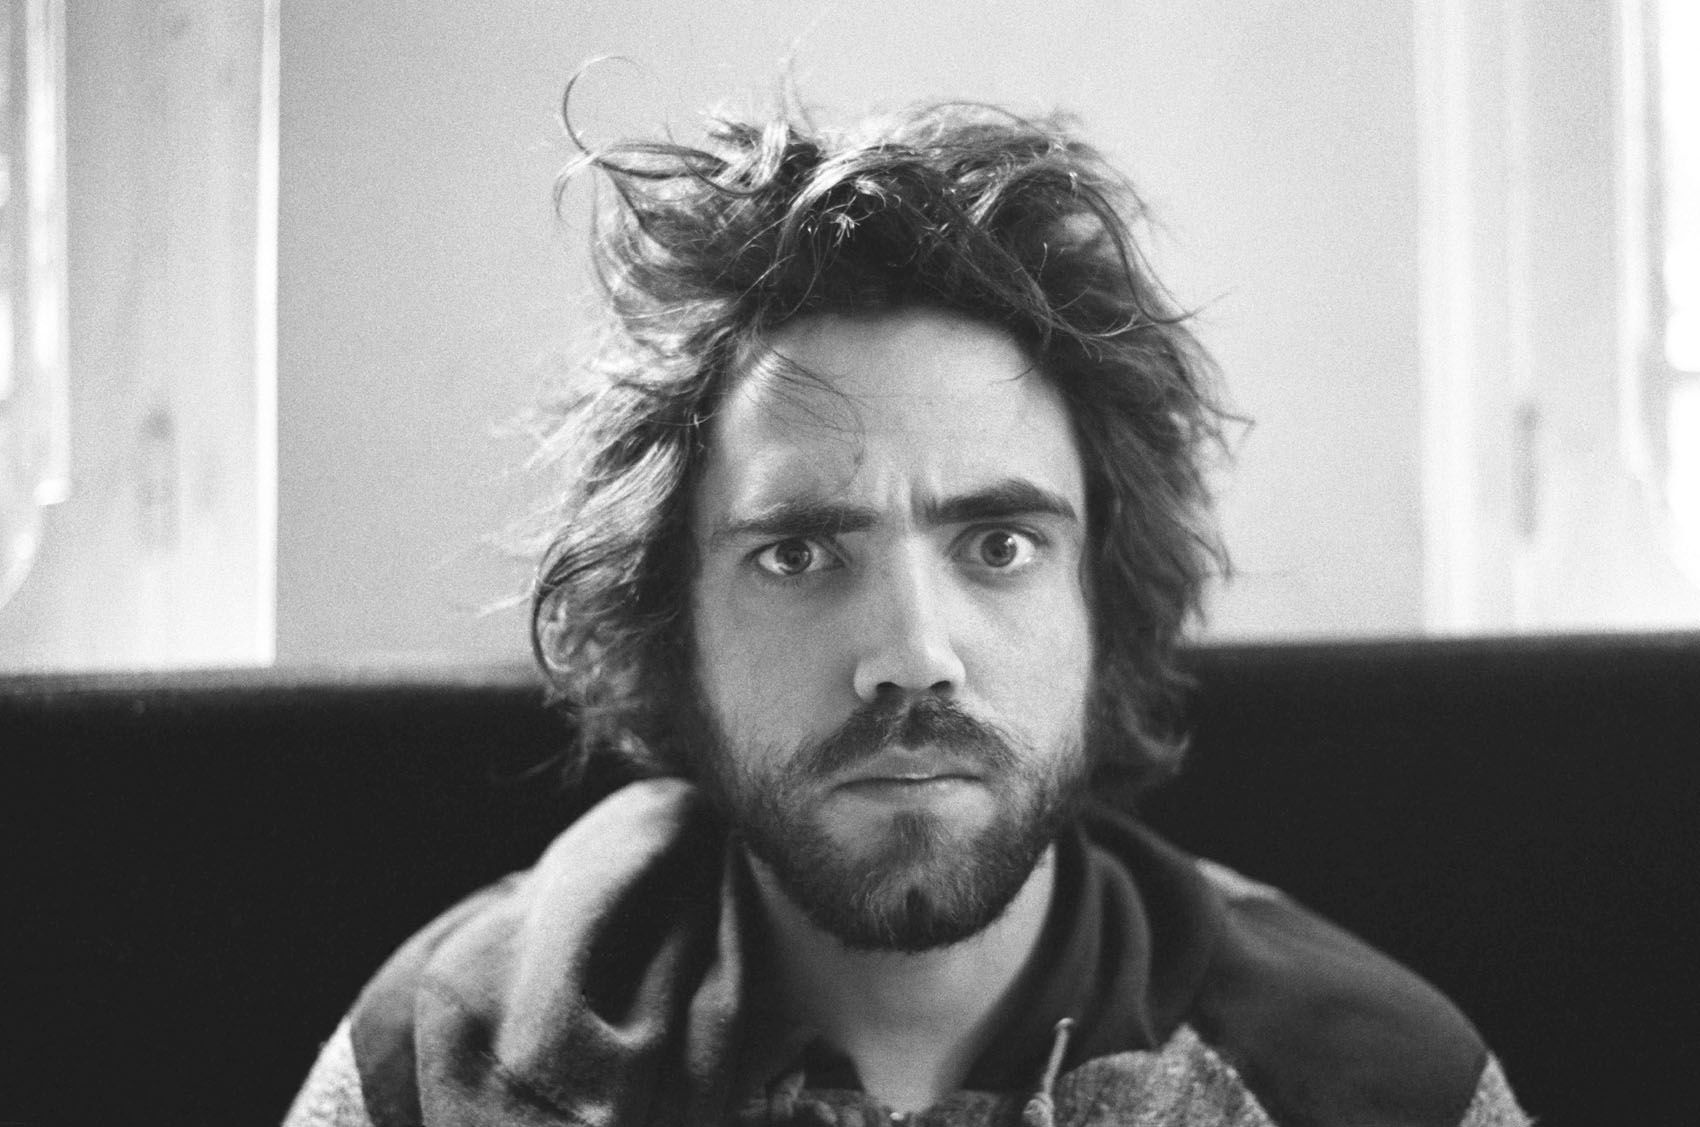 """Patrick Watson has released the video for """"Love Songs For Robots"""". The title-track from his latest album, now out on Domino Records."""